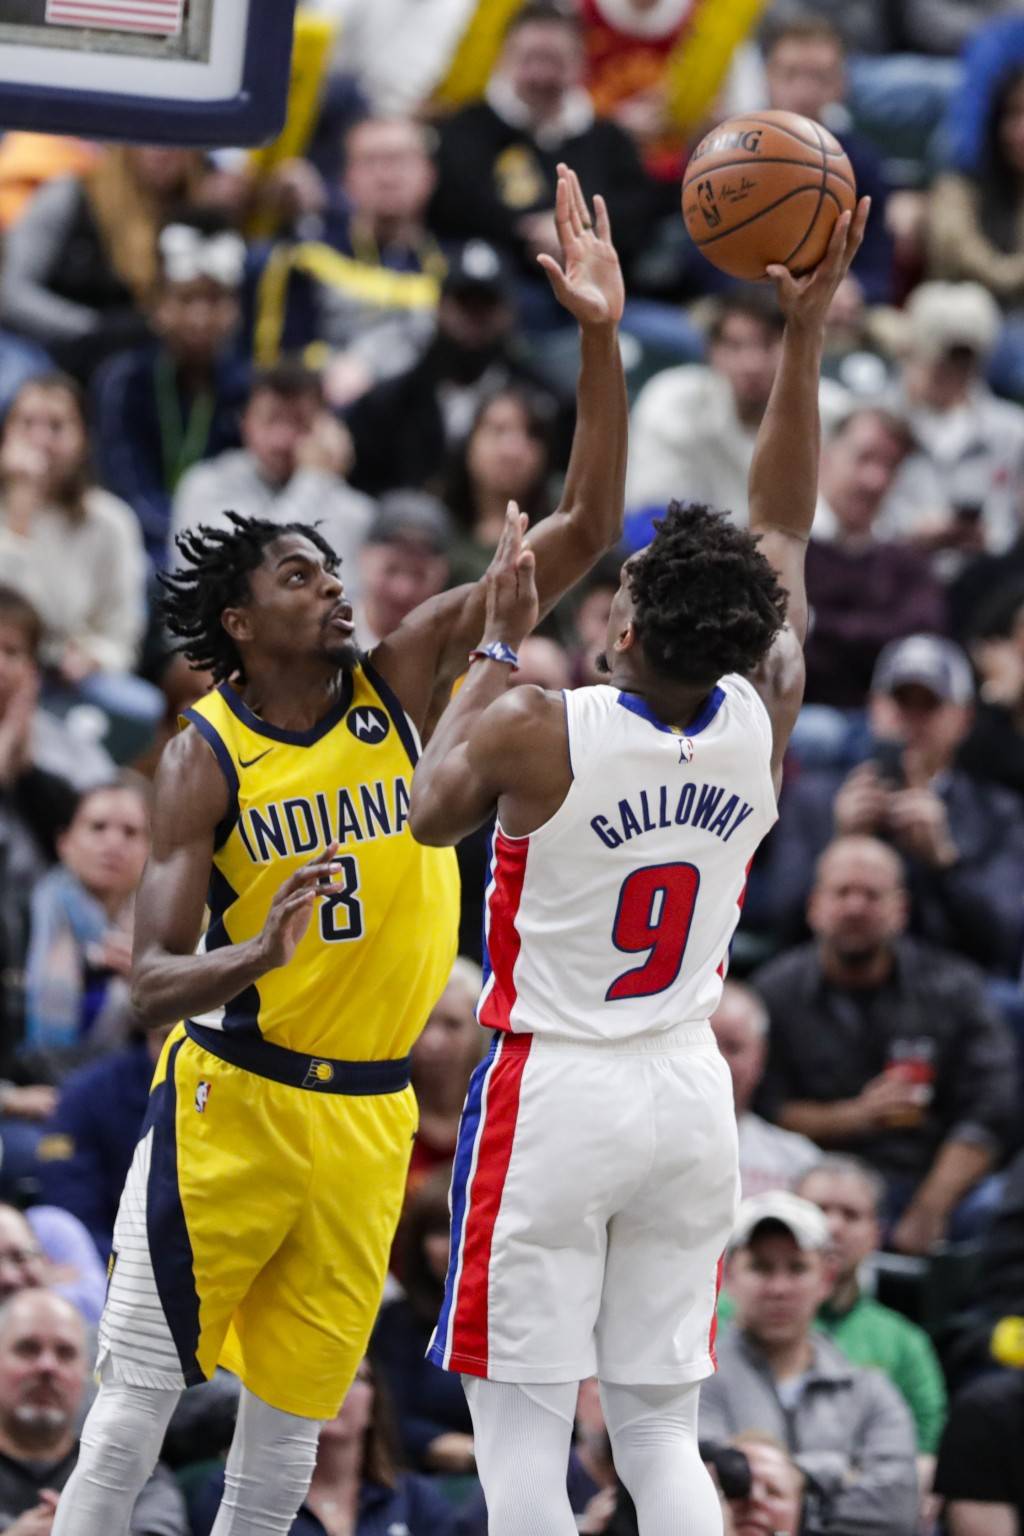 Indiana Pacers forward Justin Holiday (8) blocks the shot of Detroit Pistons guard Langston Galloway (9) during the second half of an NBA basketball g...